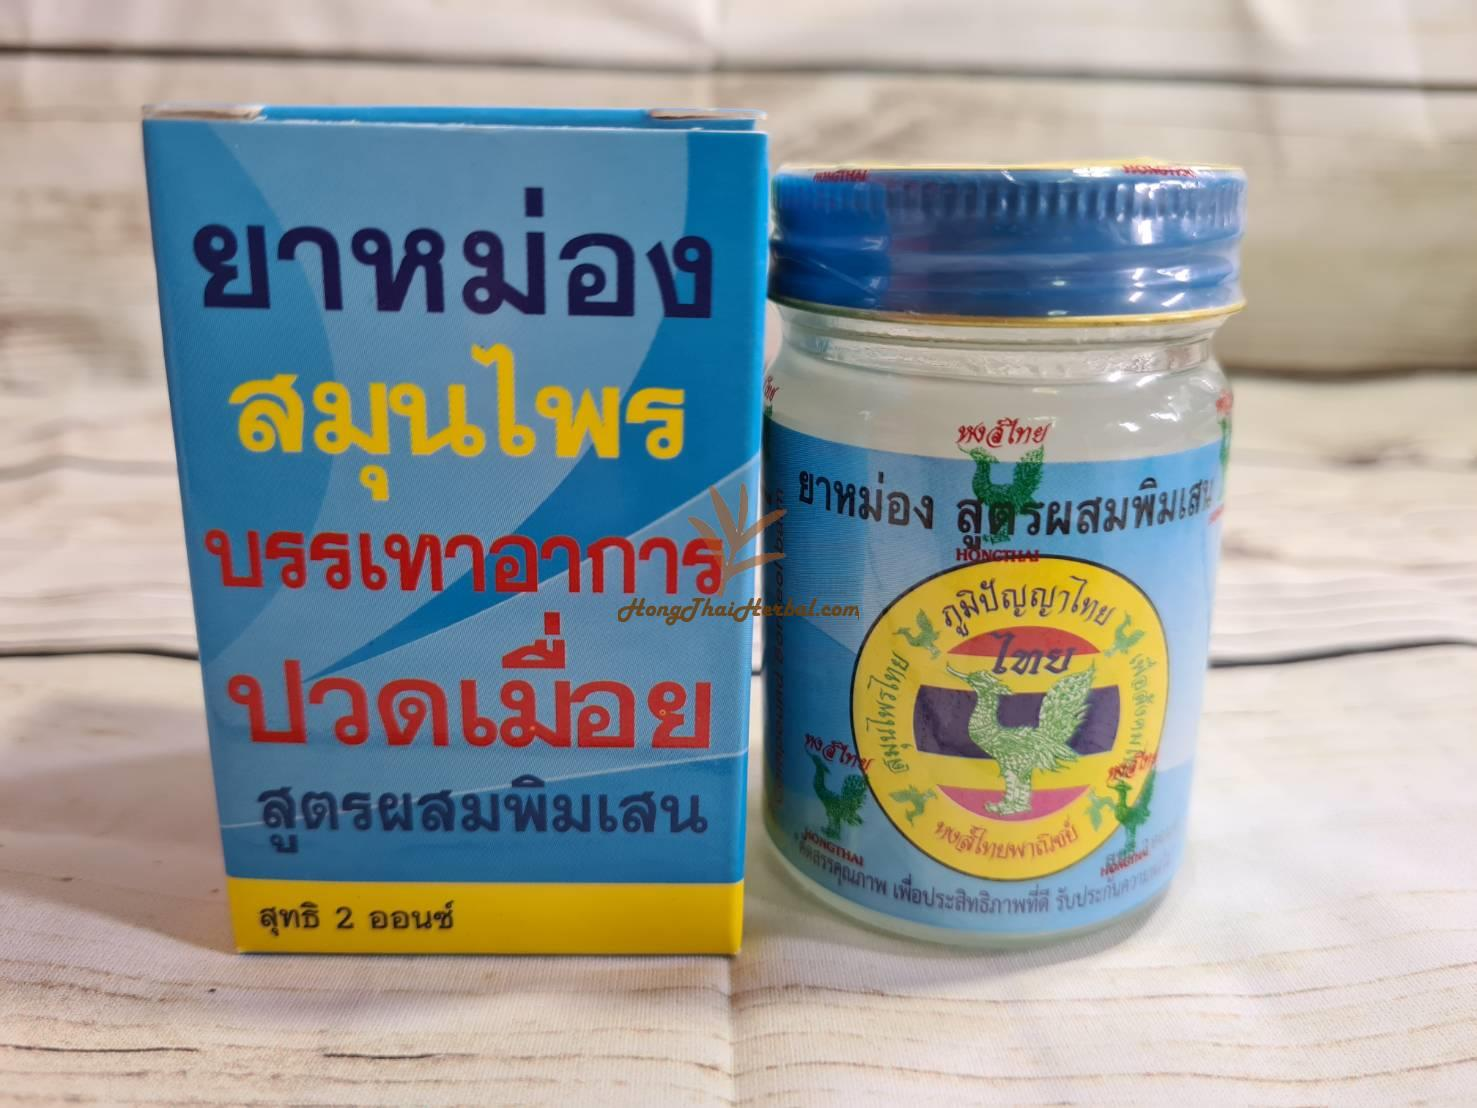 """<h2>Hong Thai Herb Cooling Balm Borneol Formula size 2 oz (50 g.) for relief of muscle pain</h2><h2><br></h2><h2><img src=""""https://images.accessories-product.com/imgProduct/UsHon-20181025154218724/UsHon-20181025154218724-20210616122119/Wtmk_359ff97f-2f7c-4ee9-ab86-47127dfeecb1.jpg"""" class=""""img-thumbnail"""" style=""""width: 50%;""""></h2><h2><br></h2><div style=""""color: rgb(49, 49, 49); font-size: 24px;""""><span style=""""font-weight: bold; font-size: 18px;"""">Product size</span><span style=""""font-size: 18px;"""">including packaging (WxDxH) 4.5x4.5x7.5 cm.</span></div><div style=""""color: rgb(49, 49, 49); font-size: 24px;""""><br></div><div style=""""color: rgb(49, 49, 49); font-size: 24px;""""><span style=""""font-weight: bold; font-size: 18px;"""">Weight</span><span style=""""font-size: 18px;"""">including packaging 0.15 kg.</span></div><div style=""""color: rgb(49, 49, 49); font-size: 24px;""""><br></div><div style=""""""""><span style=""""color: rgb(49, 49, 49); font-size: 18px; font-weight: 700;"""">Hong Thai Herb Cooling Balm Borneol Formula size 2 oz (50 g.) for relief of muscle pain</span><br></div><div style=""""color: rgb(49, 49, 49); font-size: 24px;""""><br></div><div style=""""color: rgb(49, 49, 49); font-size: 24px;""""><span style=""""font-weight: bold; font-size: 18px;"""">Brand :</span><span style=""""font-size: 18px;"""">Hong Thai</span></div><div style=""""color: rgb(49, 49, 49); font-size: 24px;""""><br></div><div style=""""color: rgb(49, 49, 49); font-size: 24px;""""><span style=""""font-weight: bold; font-size: 18px;"""">Product shelf life:</span><span style=""""font-size: 18px;"""">3 years from the date of manufacture</span></div><div style=""""color: rgb(49, 49, 49); font-size: 24px;""""><br></div><div style=""""color: rgb(49, 49, 49); font-size: 24px;""""><span style=""""font-weight: bold; font-size: 18px;"""">FDA No. :</span><span style=""""font-size: 18px;"""">G 411/55</span></div><div style=""""color: rgb(49, 49, 49); font-size: 24px;""""><br></div><div style=""""""""><span style=""""color: rgb(49, 49, 49); font-size: 18px; font-weight: bold;"""">Product in the box :</span><span style=""""co"""